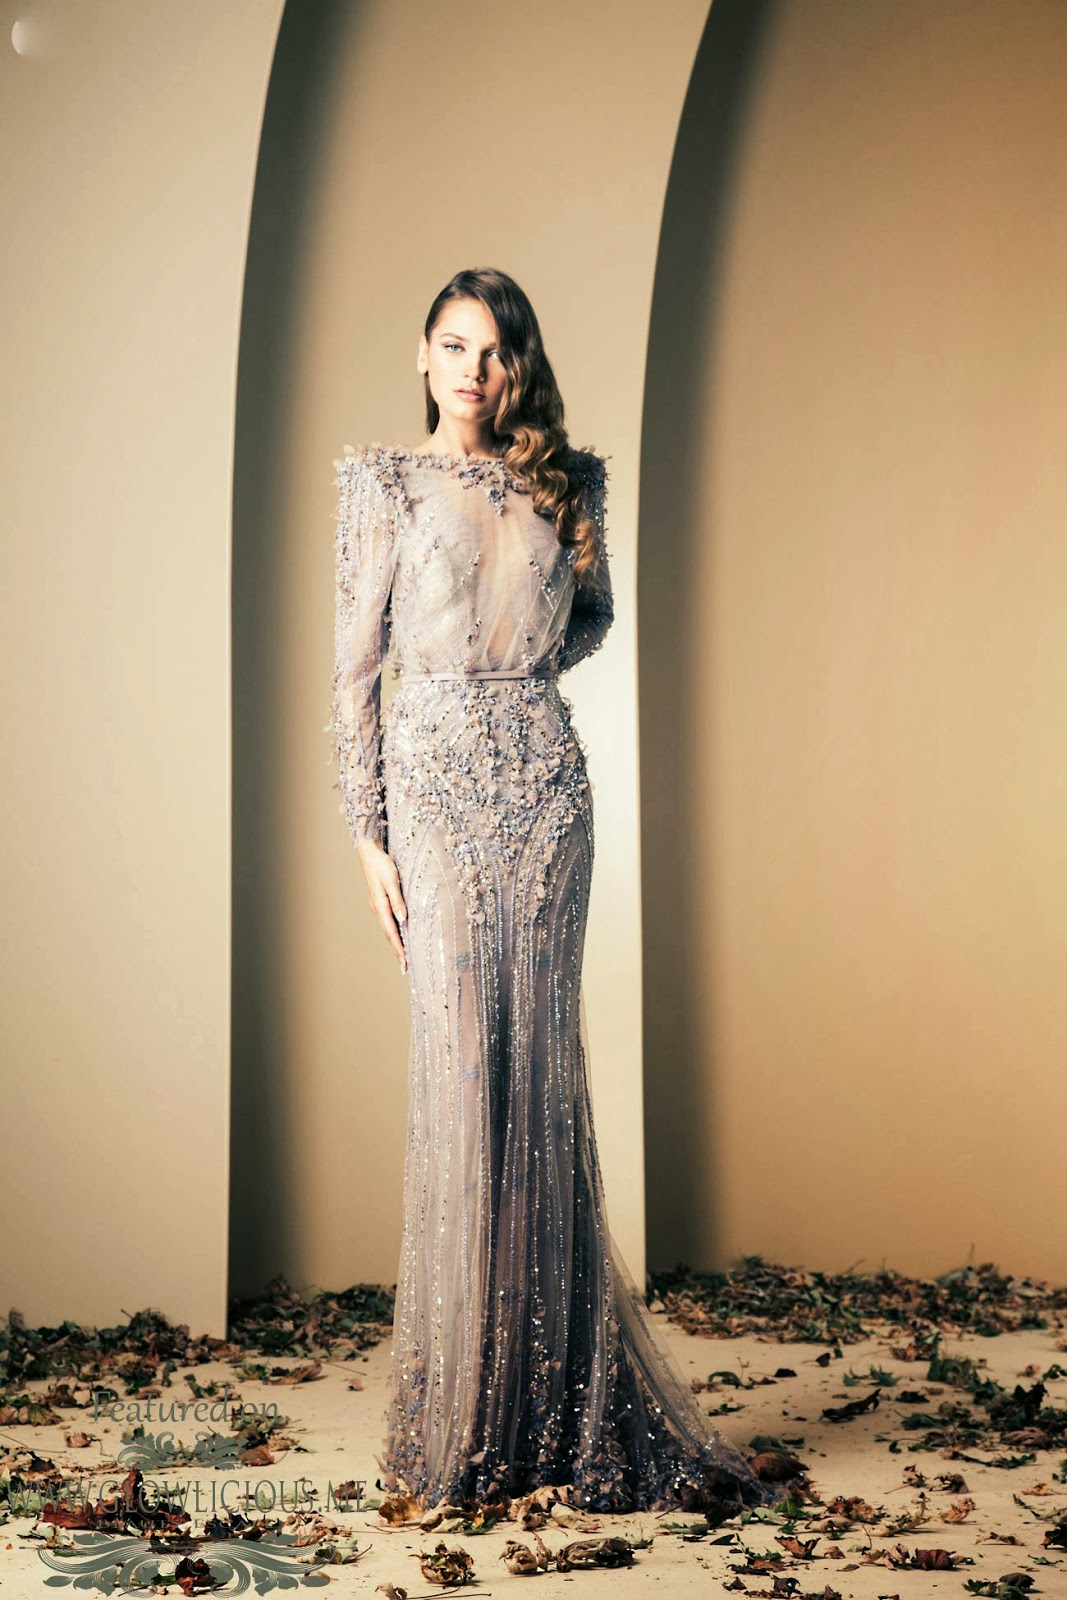 Ziad nakad haute couture fall winter 2013 glowlicious me for Haute couture winter